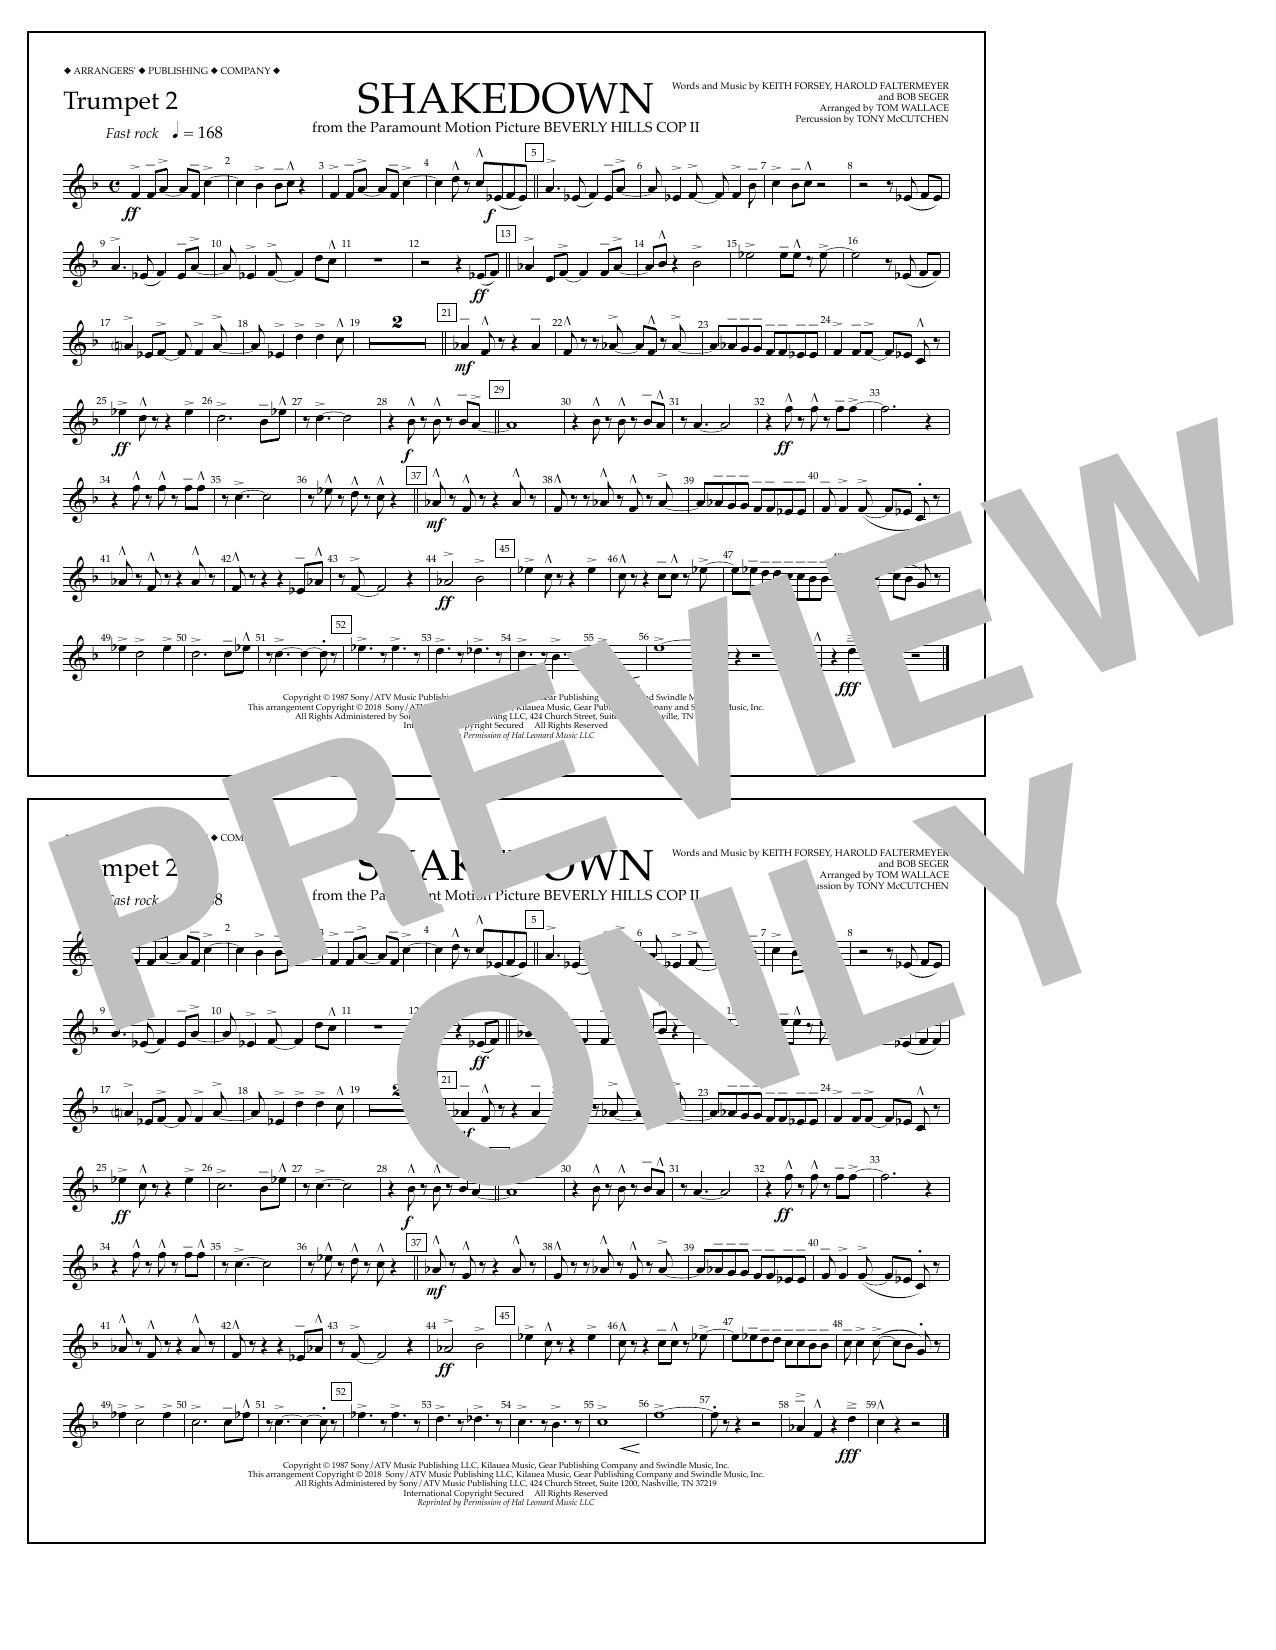 Tom Wallace Shakedown - Trumpet 2 sheet music notes and chords. Download Printable PDF.